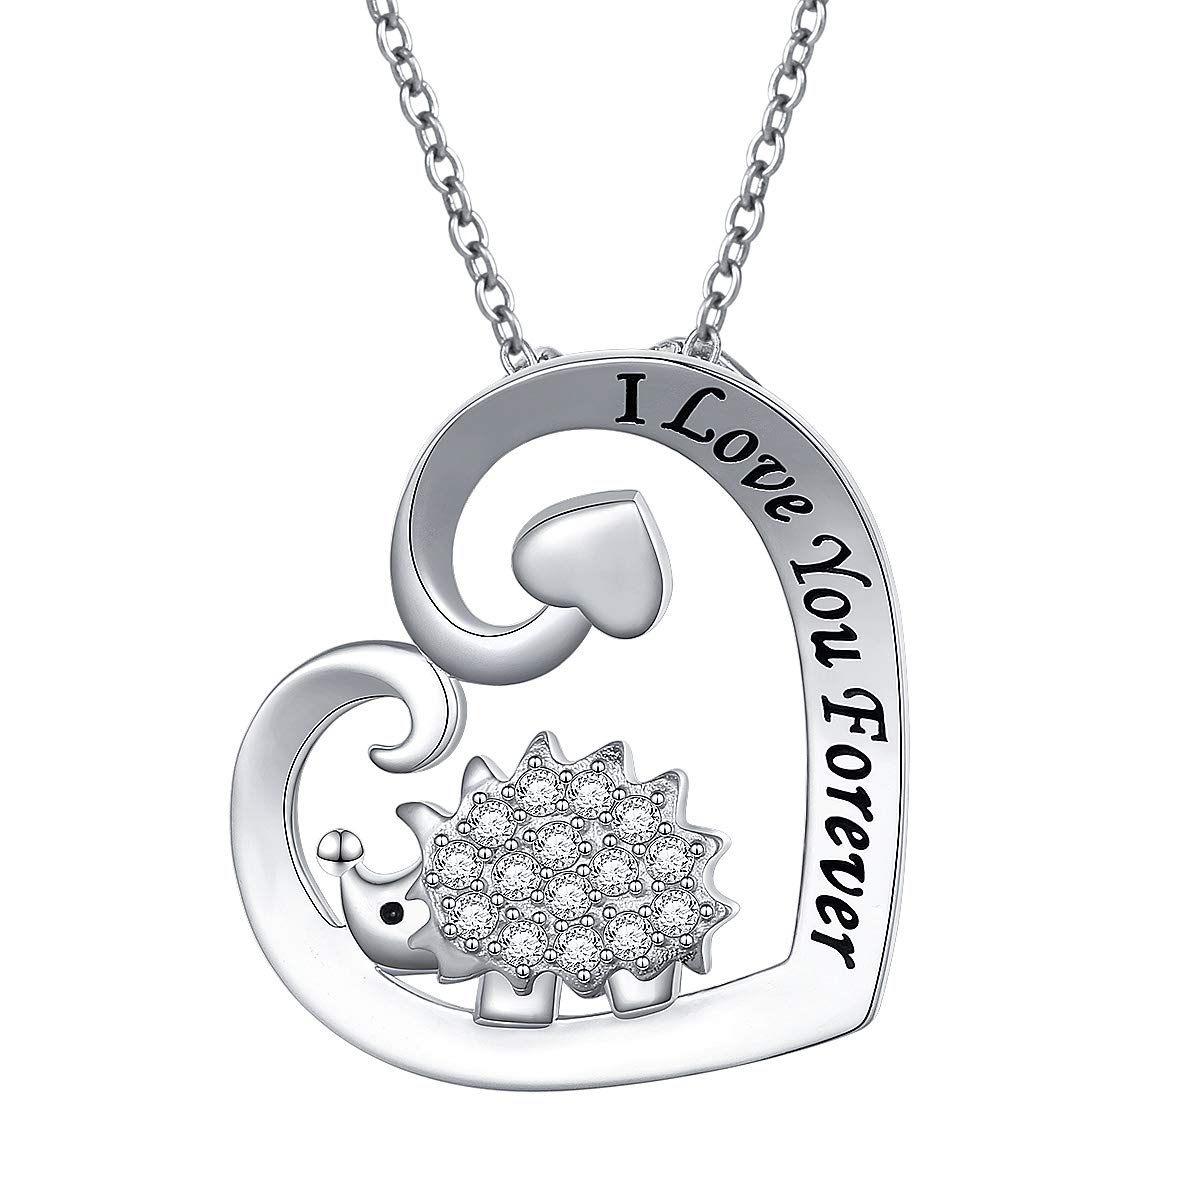 925 Sterling Silver Cute Animal I Love You Forever CZ Hedgehog Pendant Necklace Gift for Women Girls,18 inch